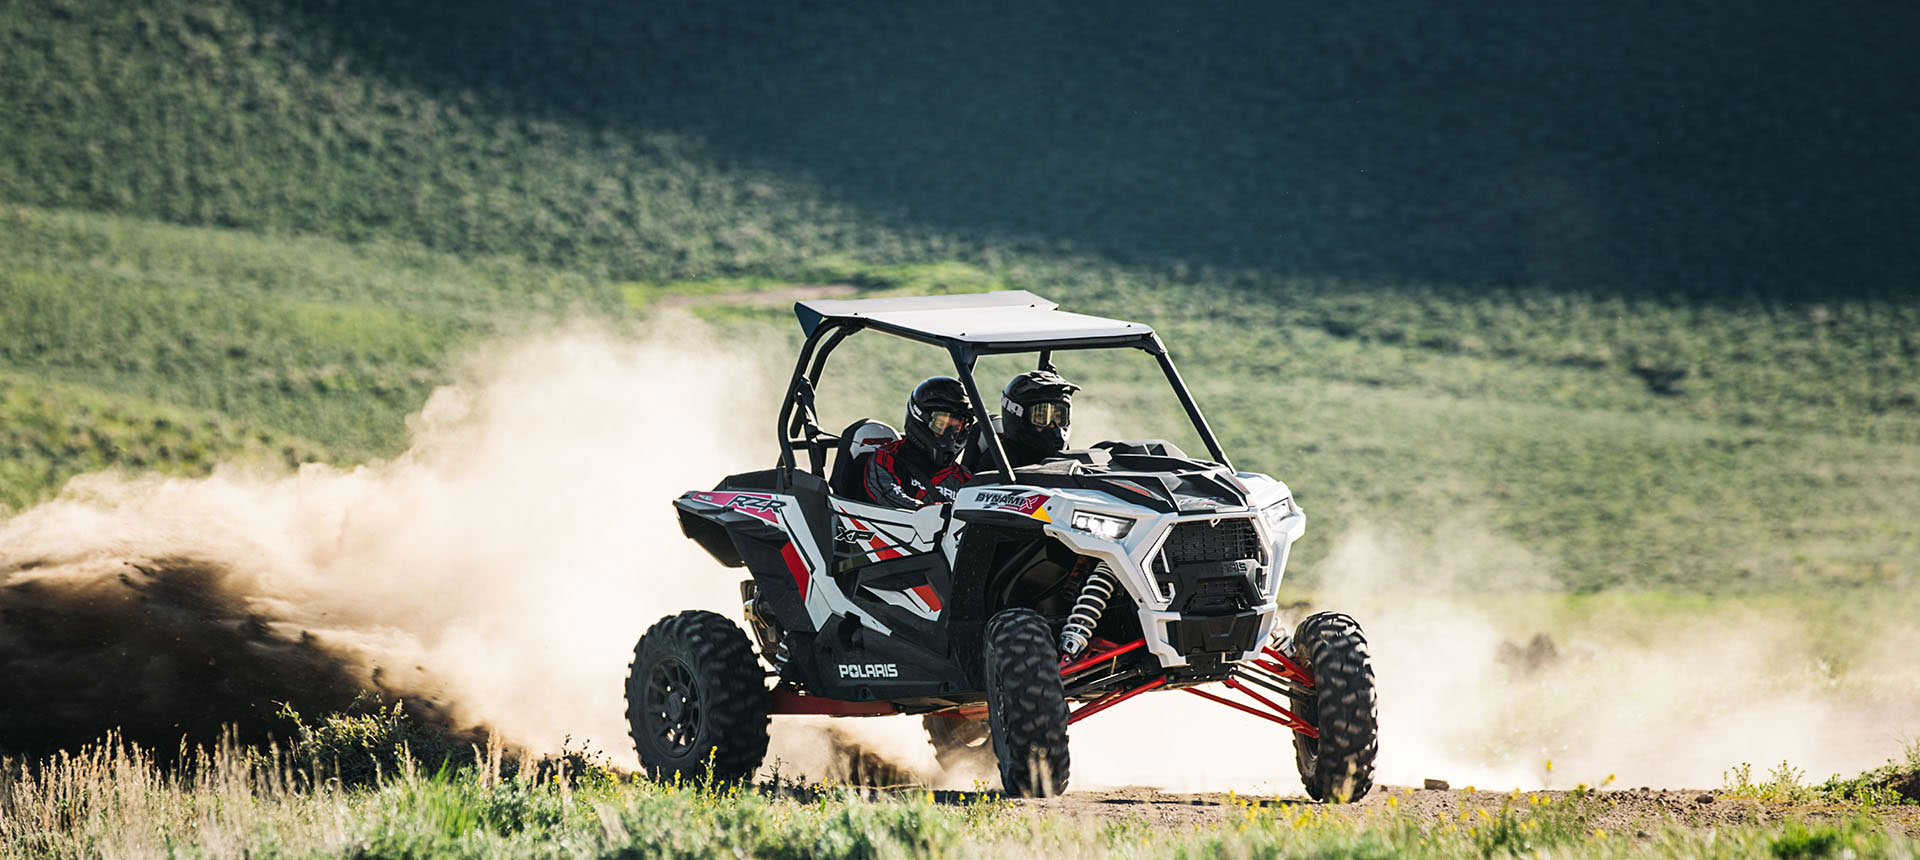 2019 Polaris RZR XP 1000 in Marietta, Ohio - Photo 3